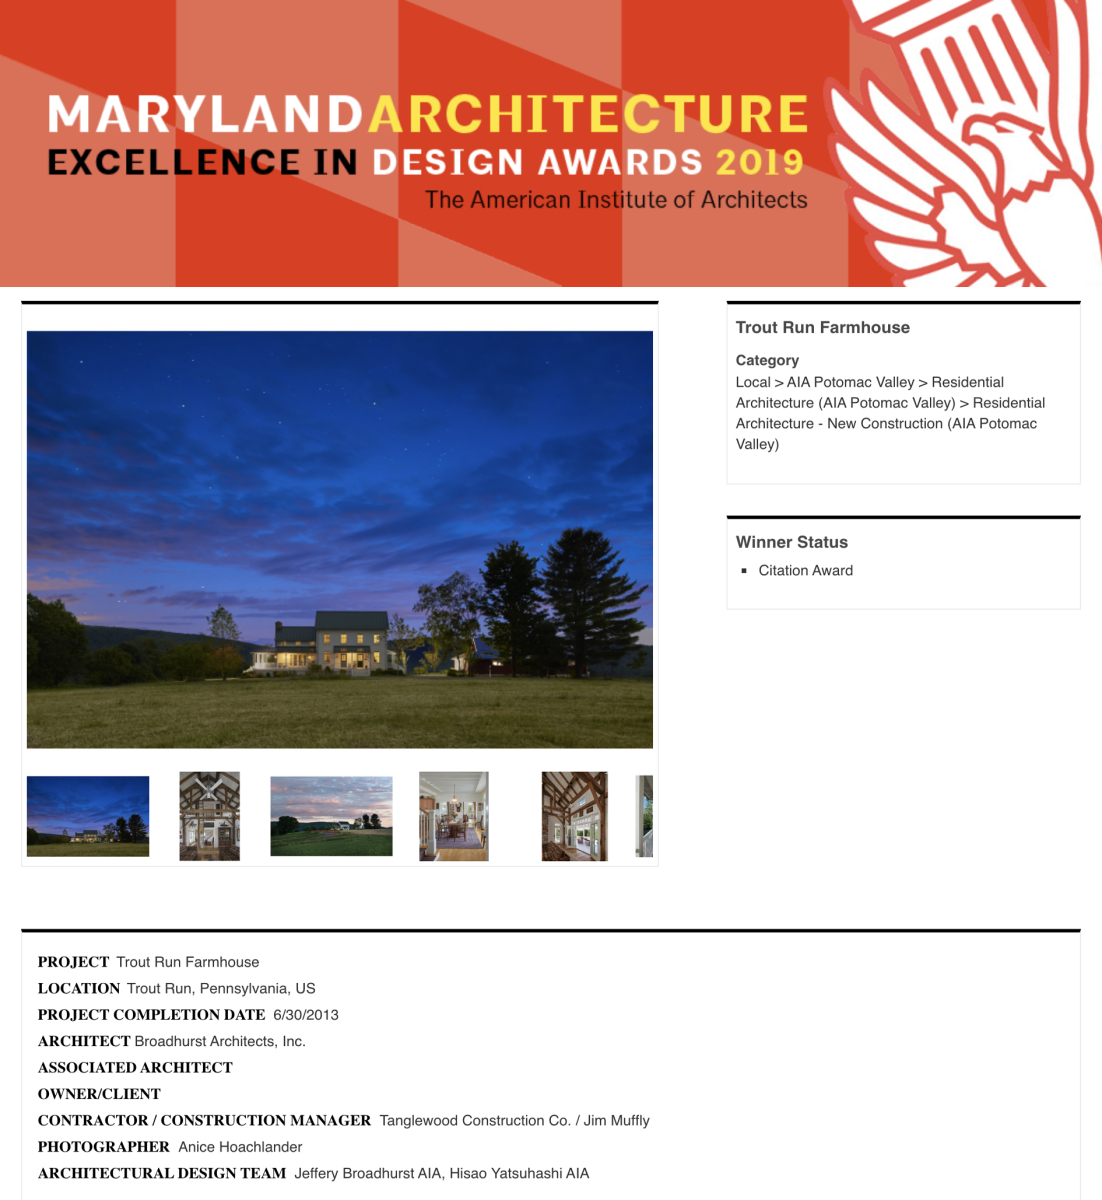 AIA of Potomac Valley 2017 Citation Award in Residential Architecture to Broadhurst Architects, Inc.